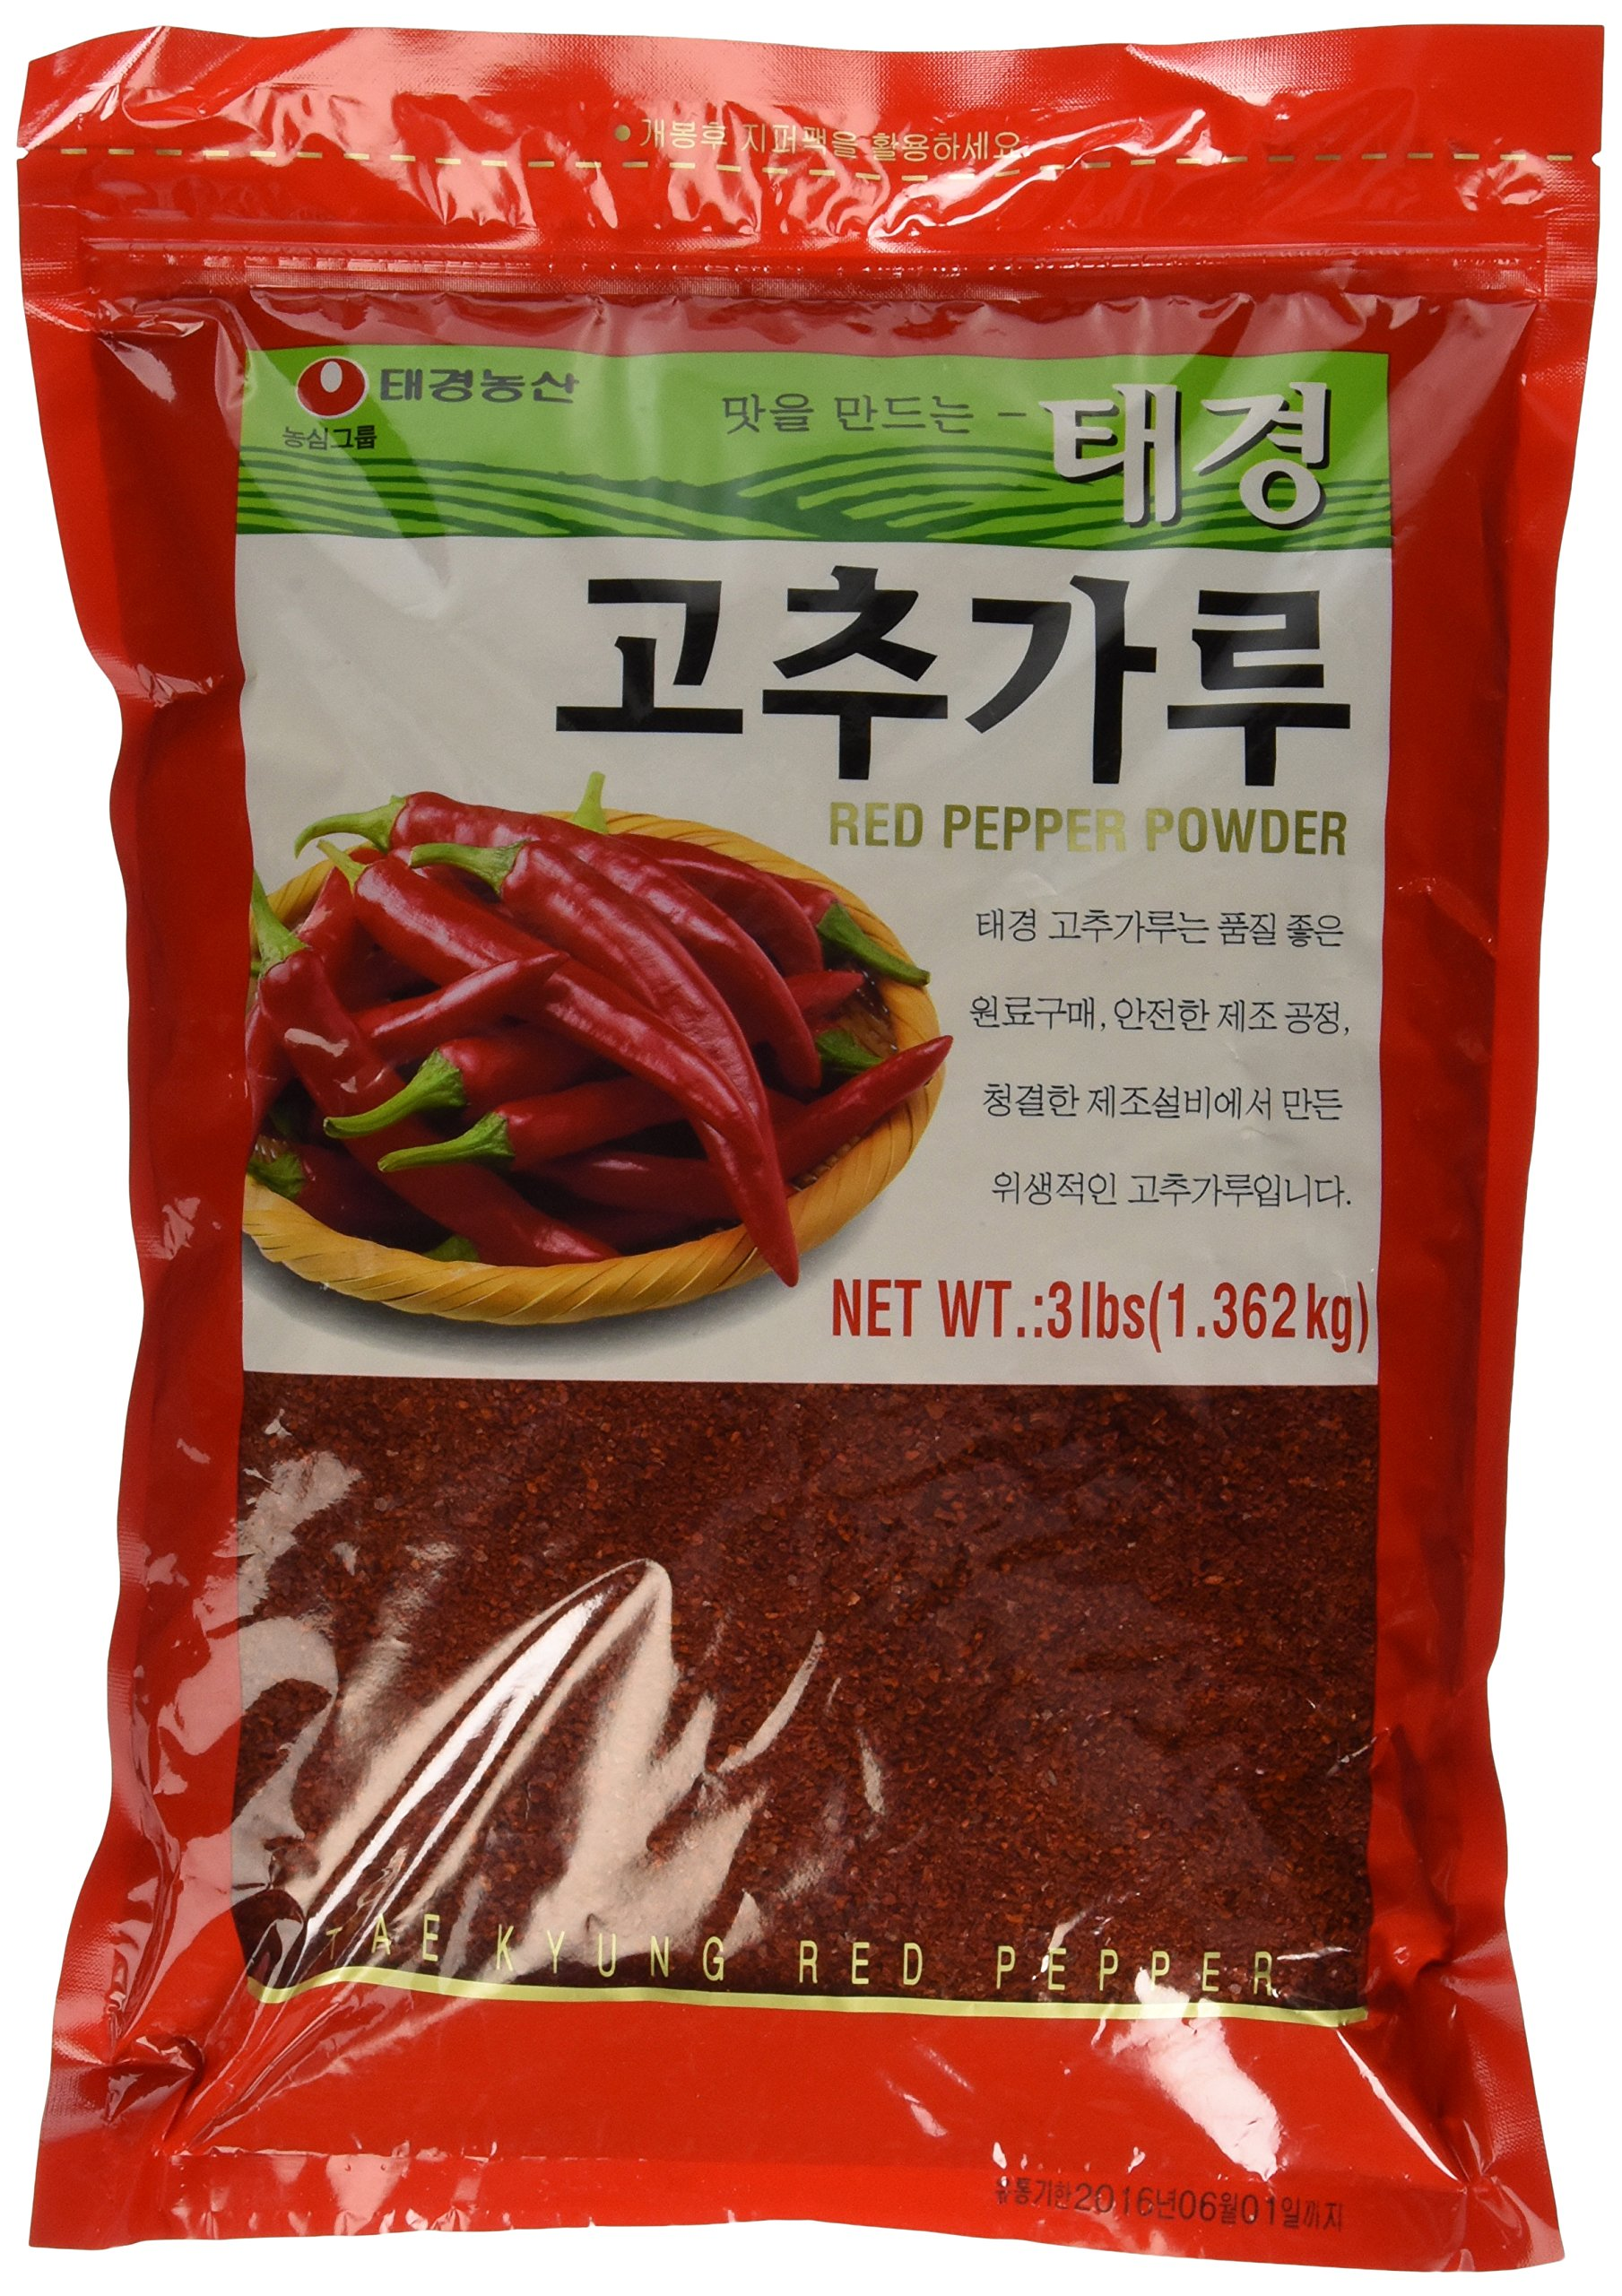 (3 LBs) Korean Red Chili Flakes, Gochugaru, Hot Pepper Type Powder By Tae-kyung